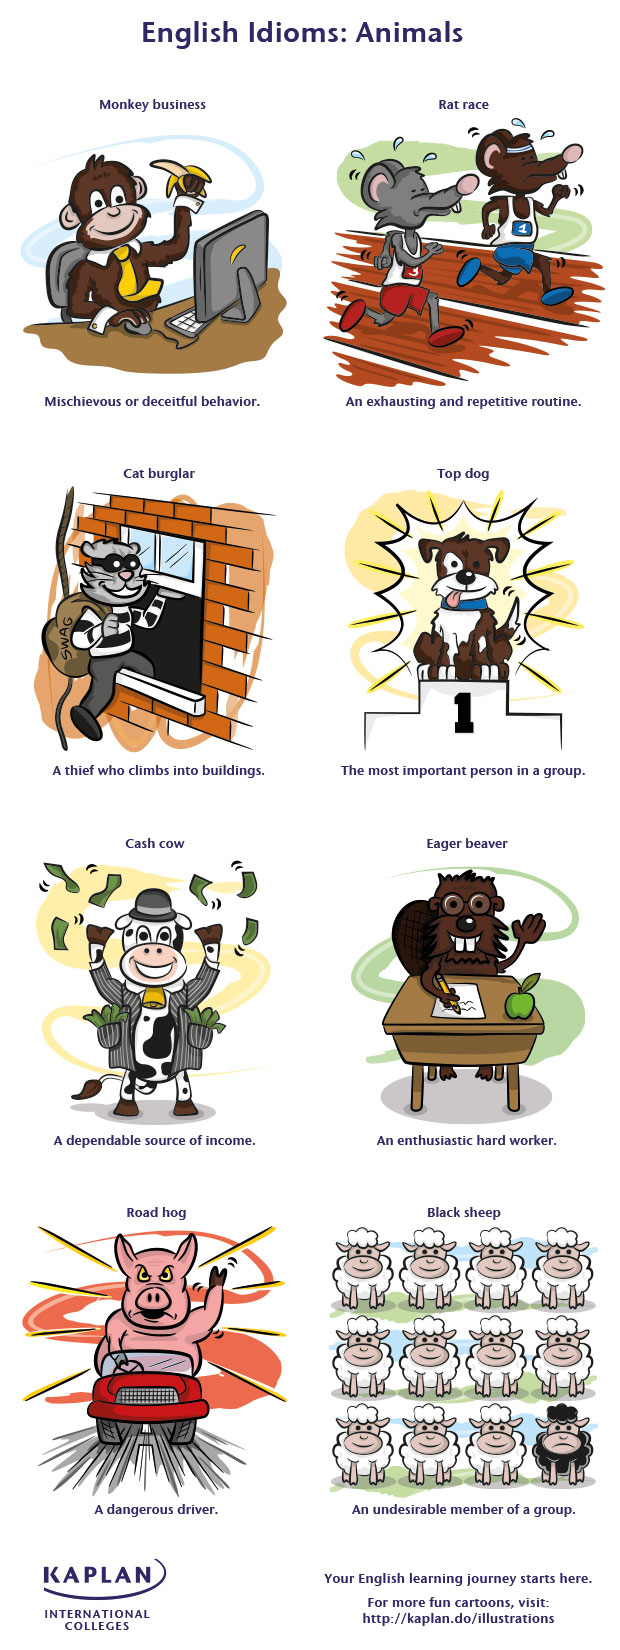 8 Simple Animal Idioms That Will Make You a Better Communicator